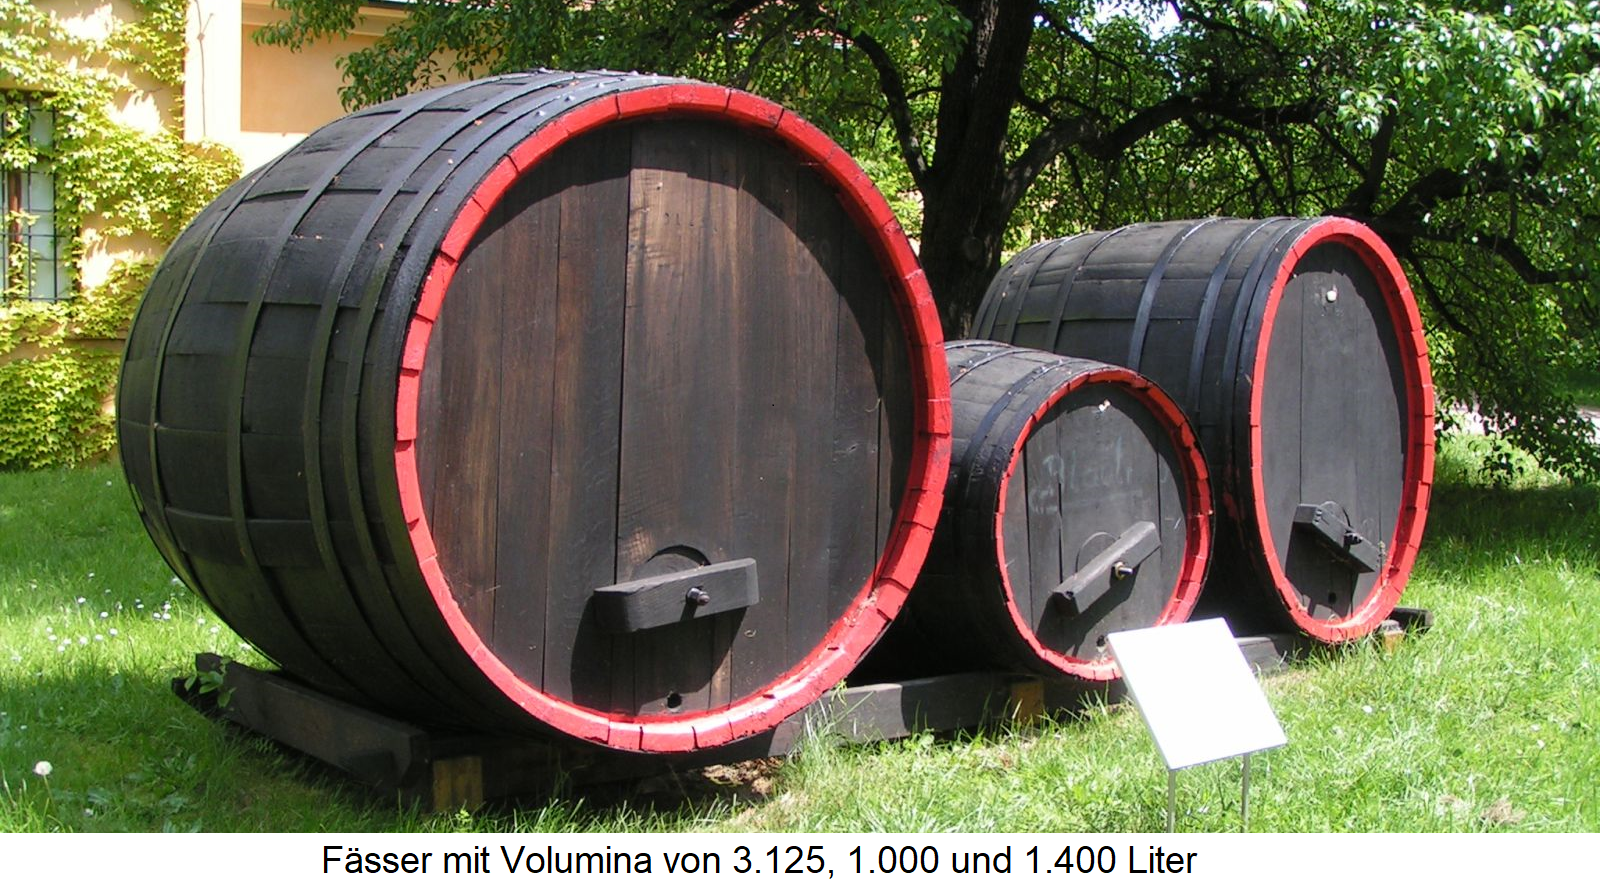 Fuder - drums with 3,125, 1,000 and 1,400 liters